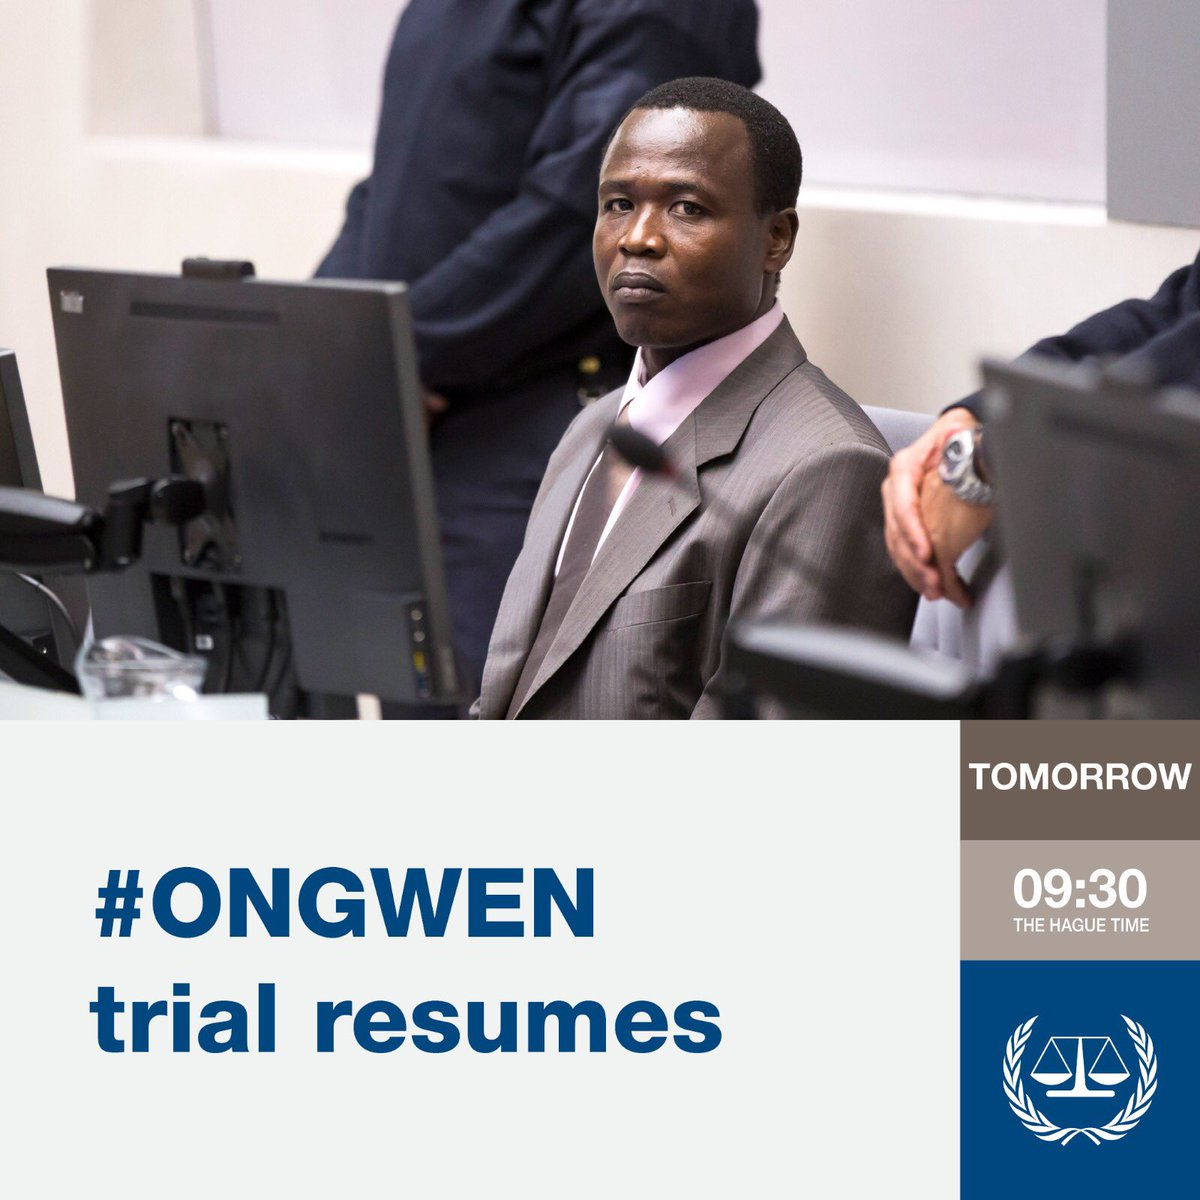 #ICC trial against Dominic #Ongwen resumes tomorrow at 9:30 (The Hague time) 📺 Watch the hearings via webstreaming (with a 30-minute delay): http://player.cdn.tv1.eu/statics/66005/icc.html?loc=CR1…